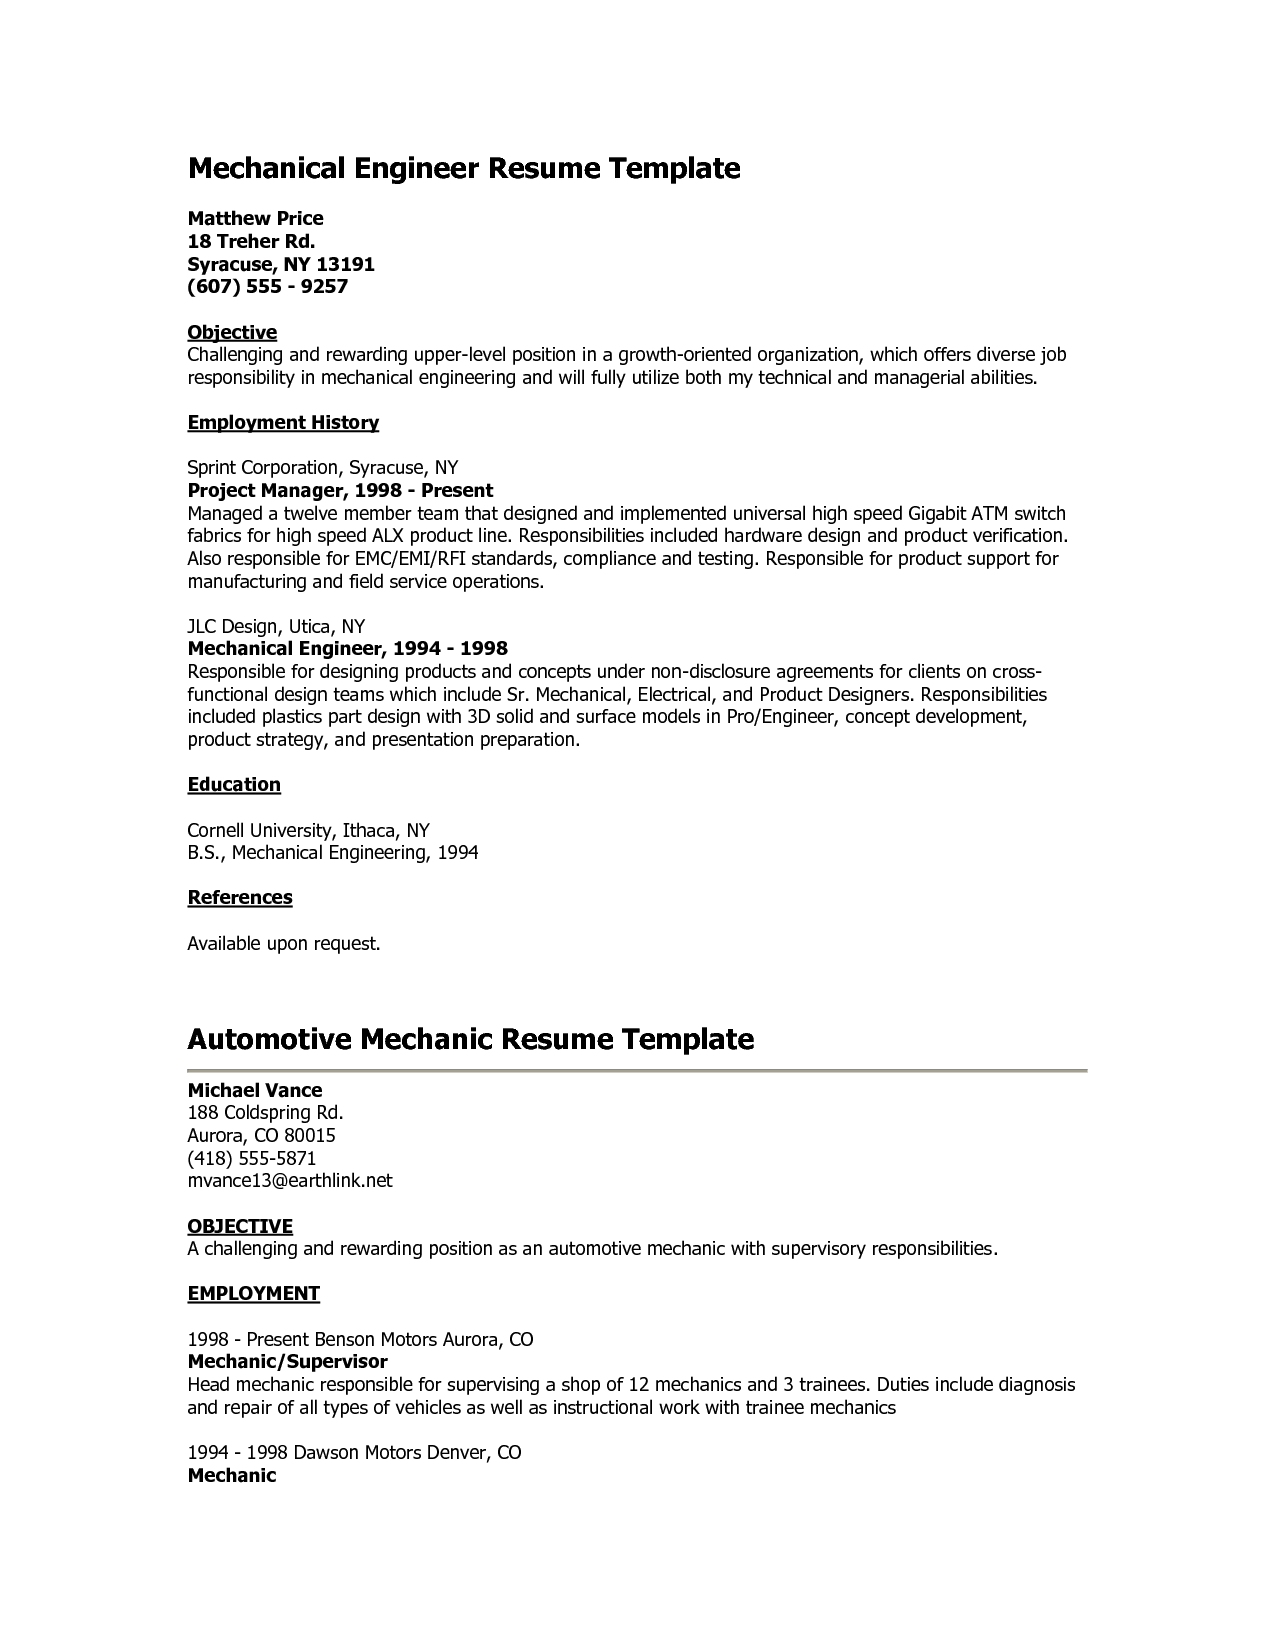 Teller Resumes Gorgeous Bank Teller Resume With No Experience  Httpwww.jobresume.website .